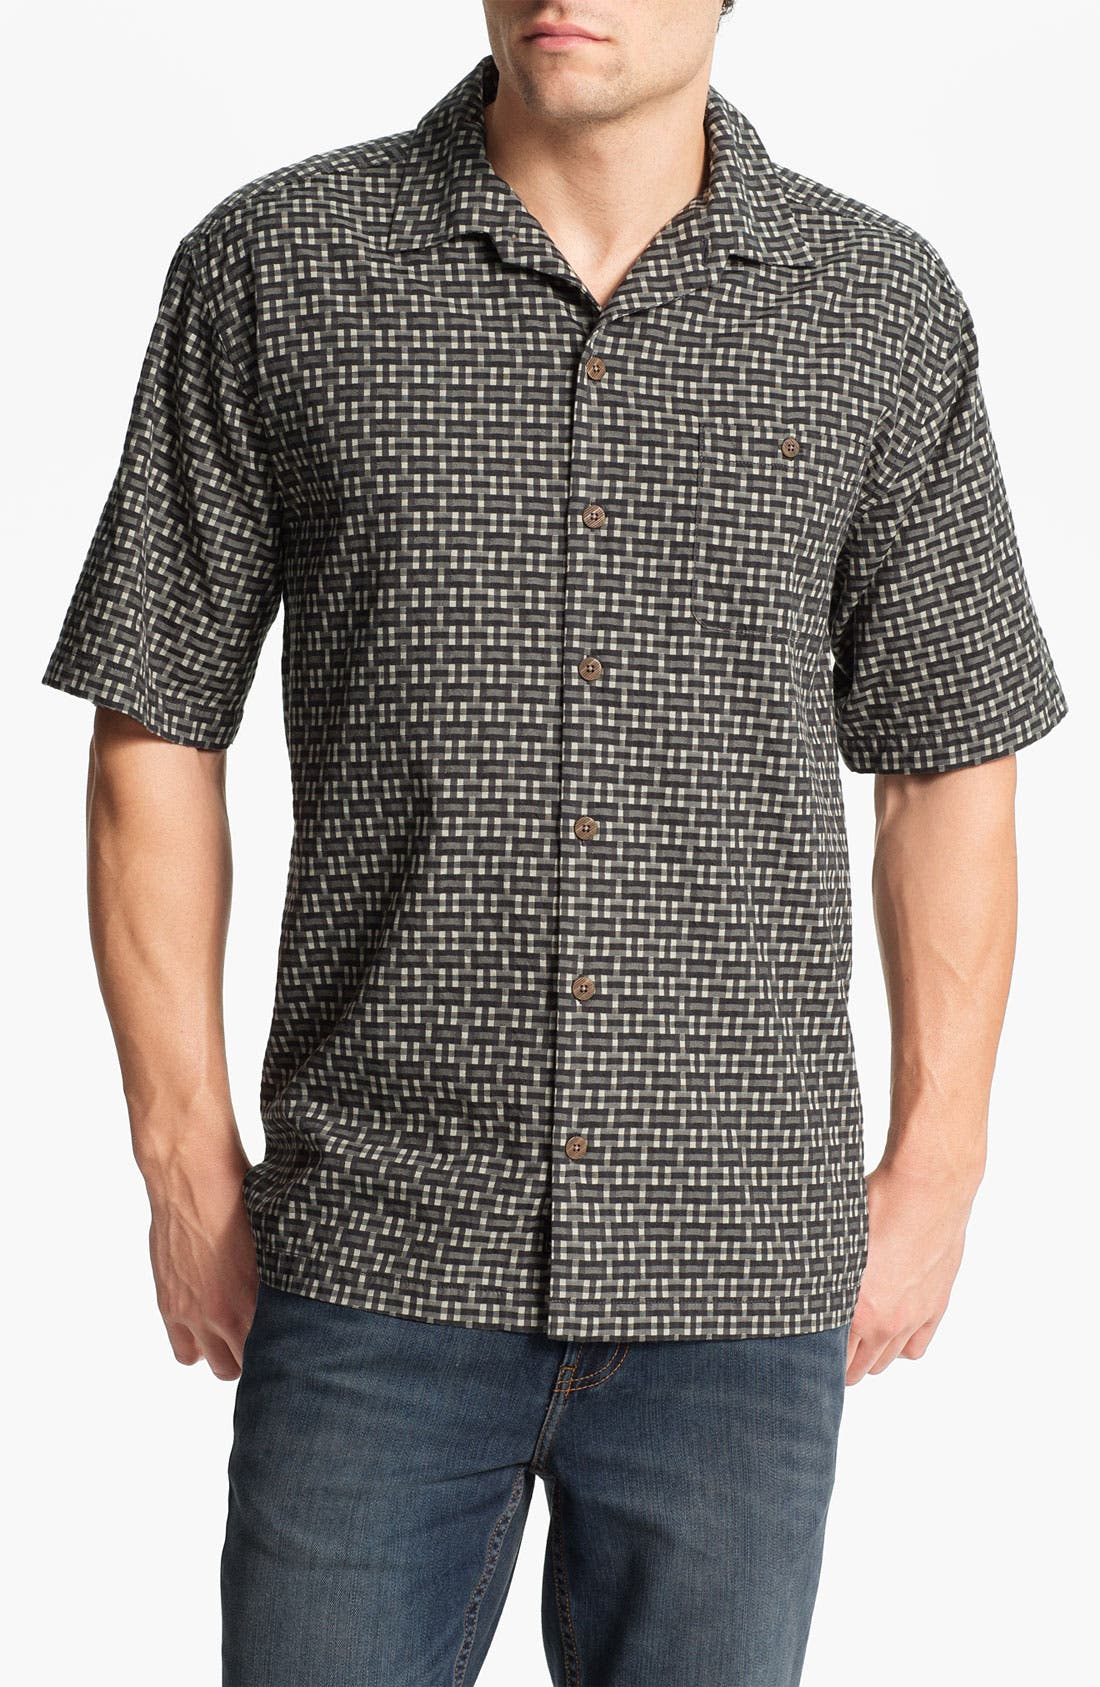 Alternate Image 1 Selected - Tommy Bahama 'Caracas Check' Silk & Cotton Campshirt